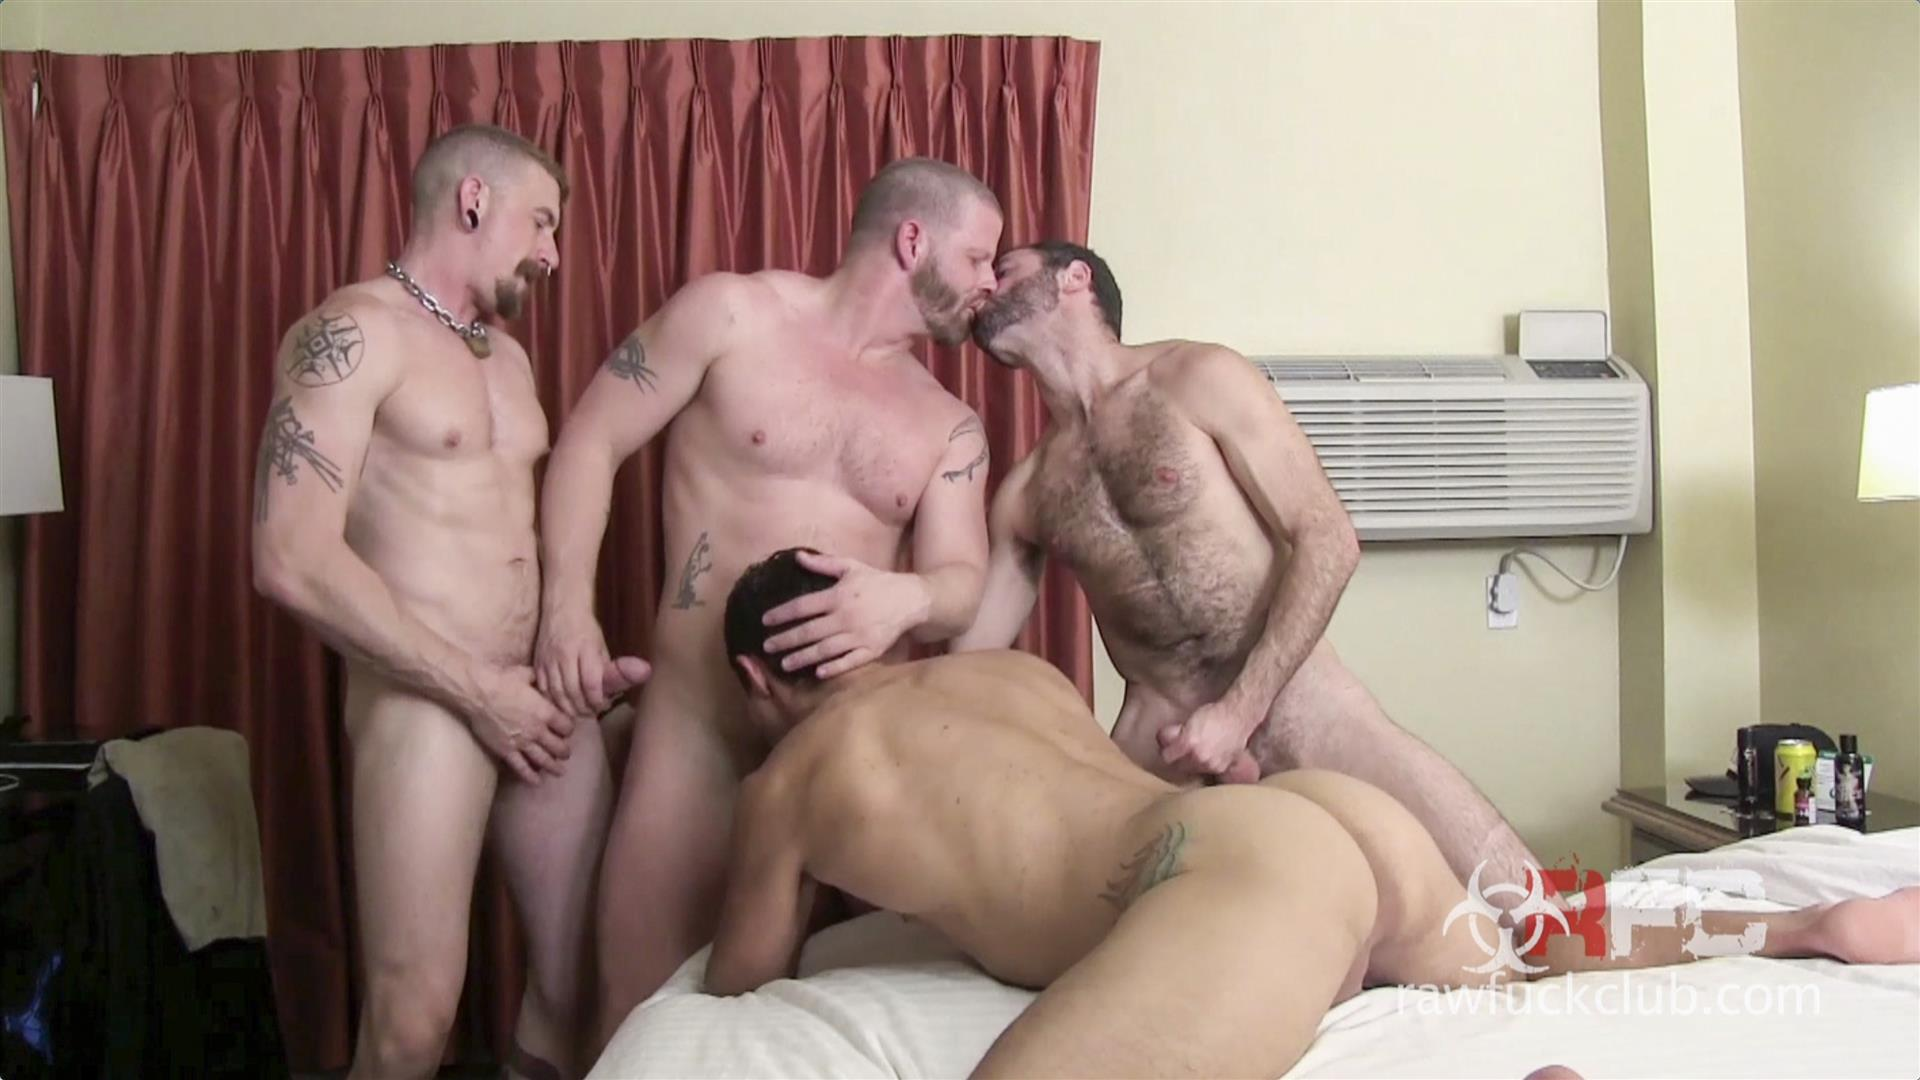 Raw Fuck Club Dylan Saunders and Dusty Williams and Jeff Kendall and Jeremy Stevens BBBH Amateur Gay Porn 10 Big Cock Amateur Hotel Bareback Sex Party